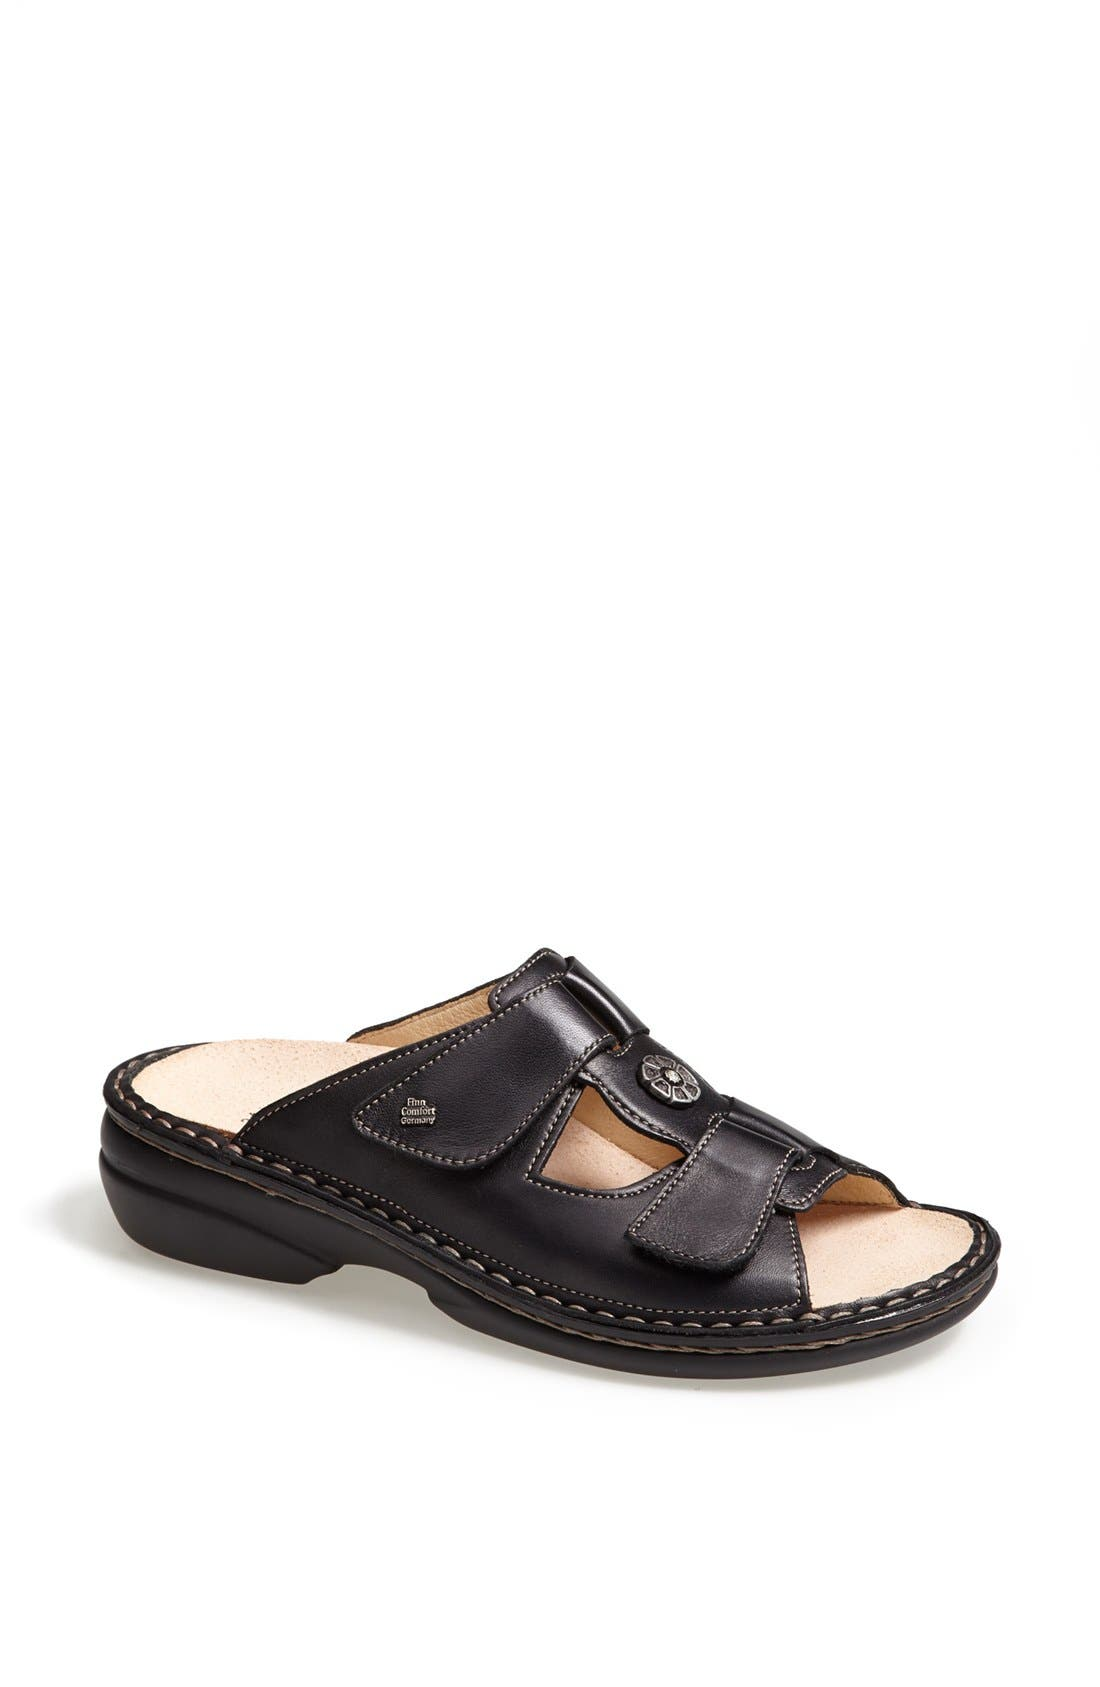 Main Image - Finn Comfort 'Pattaya' Leather Sandal